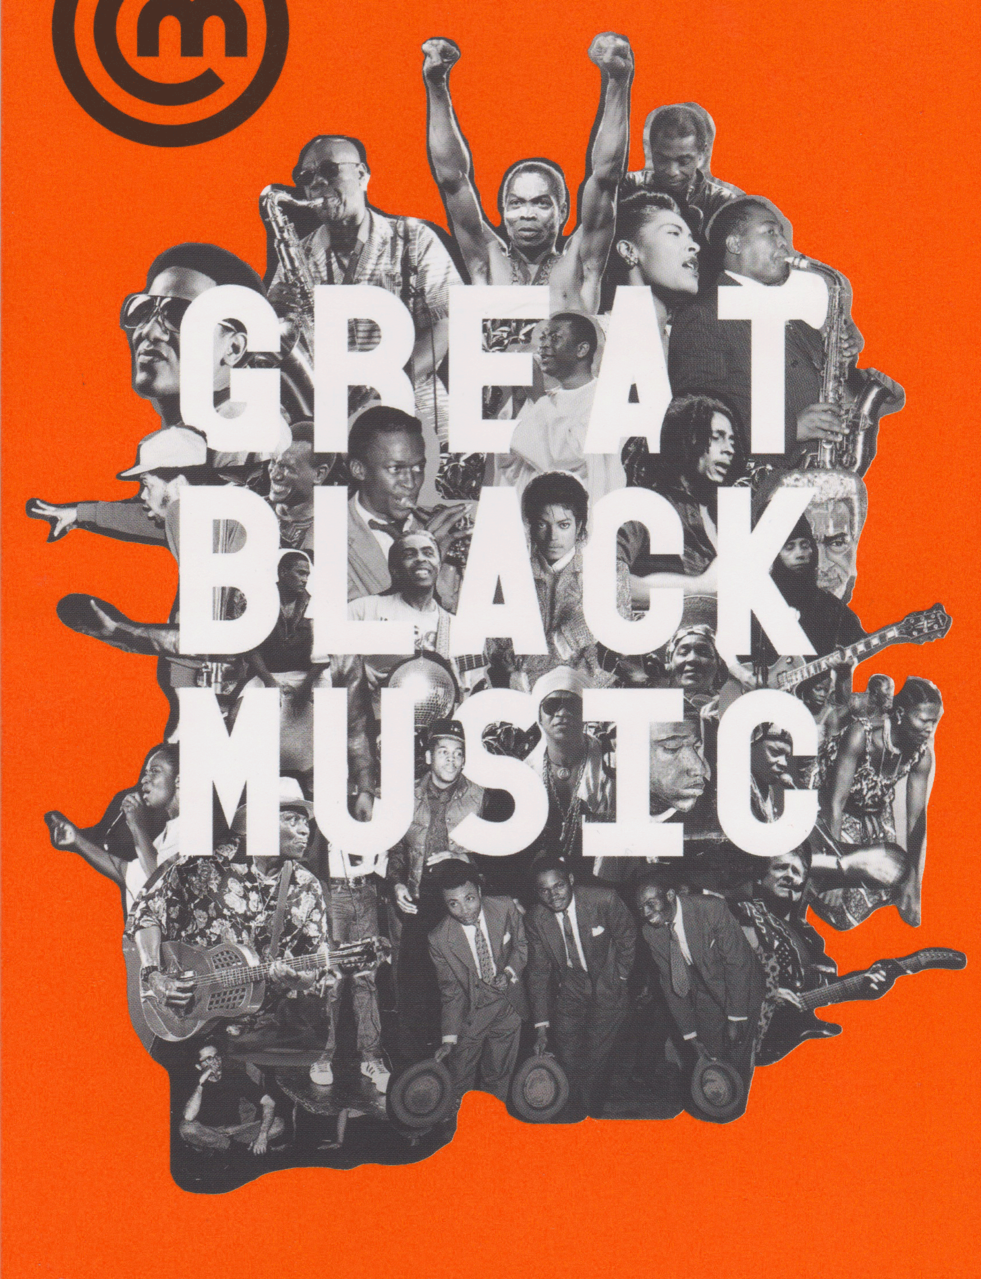 Great black music 10 03 14